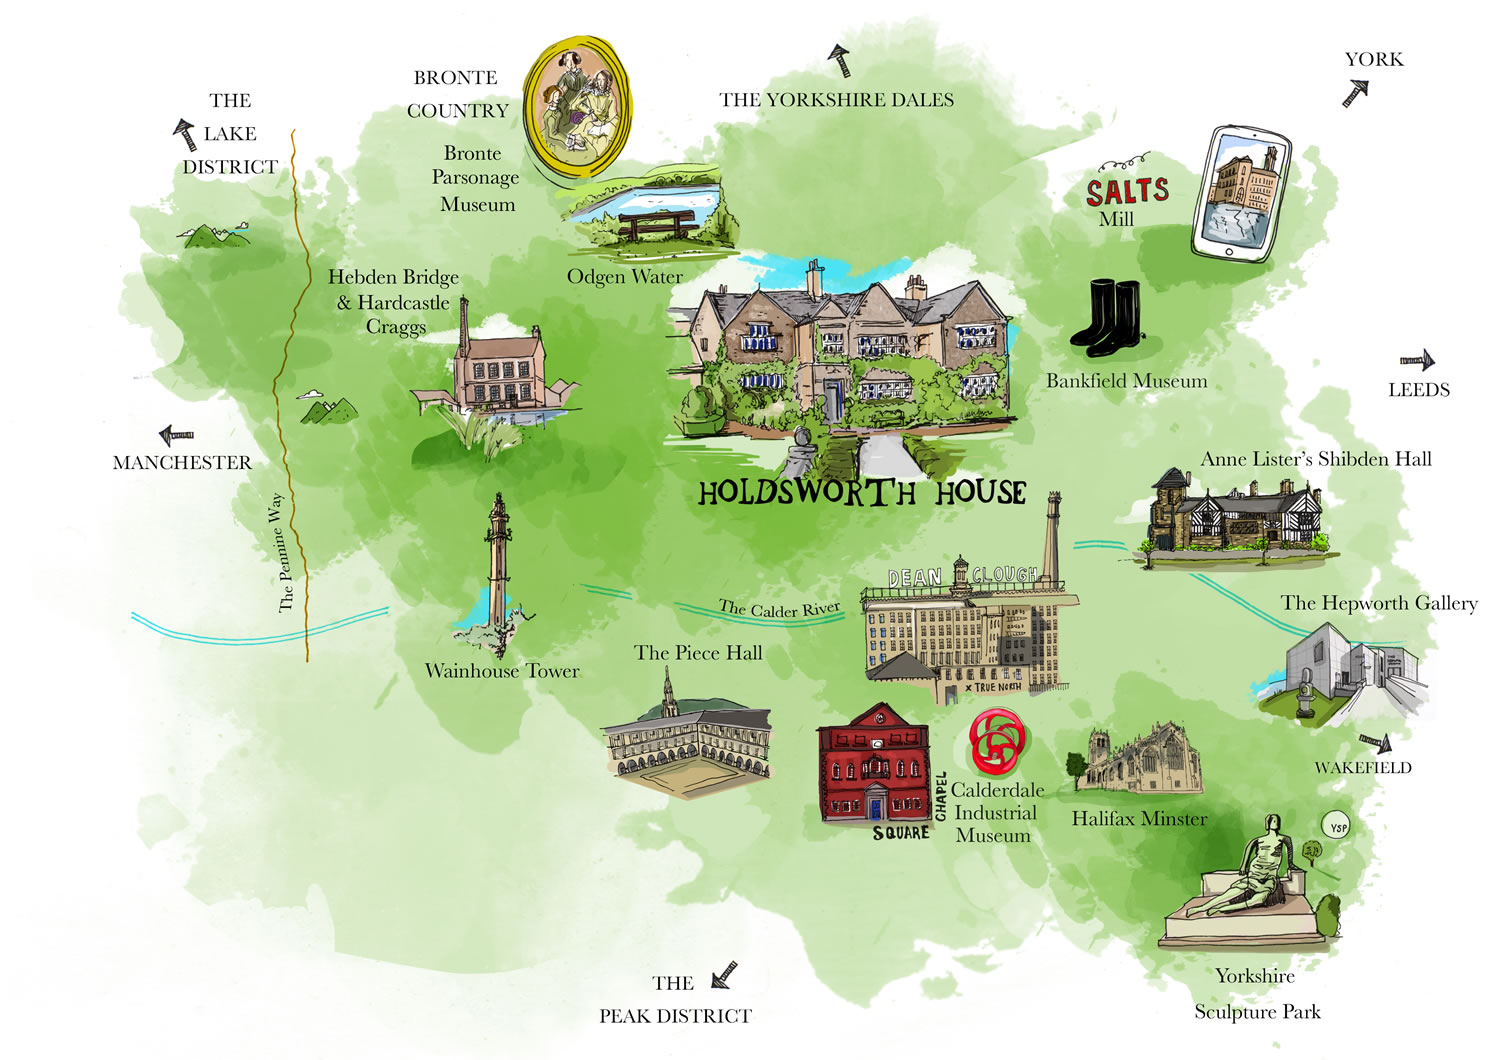 map of halifax showing holdsworth house and other attractions